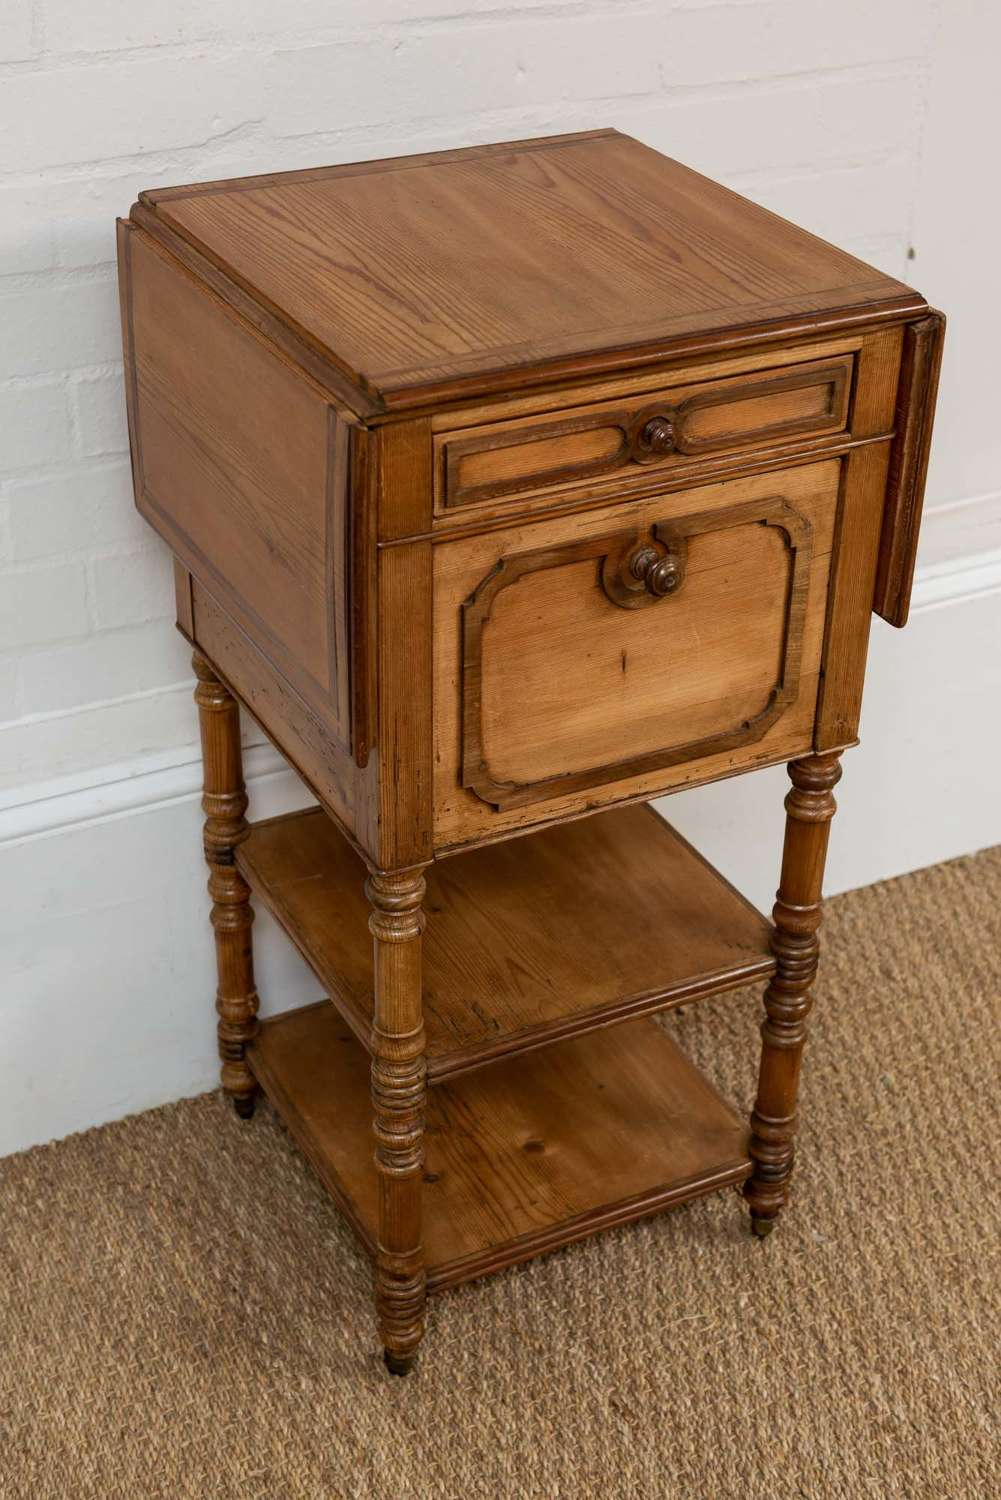 French bedside table with side flaps and under tier